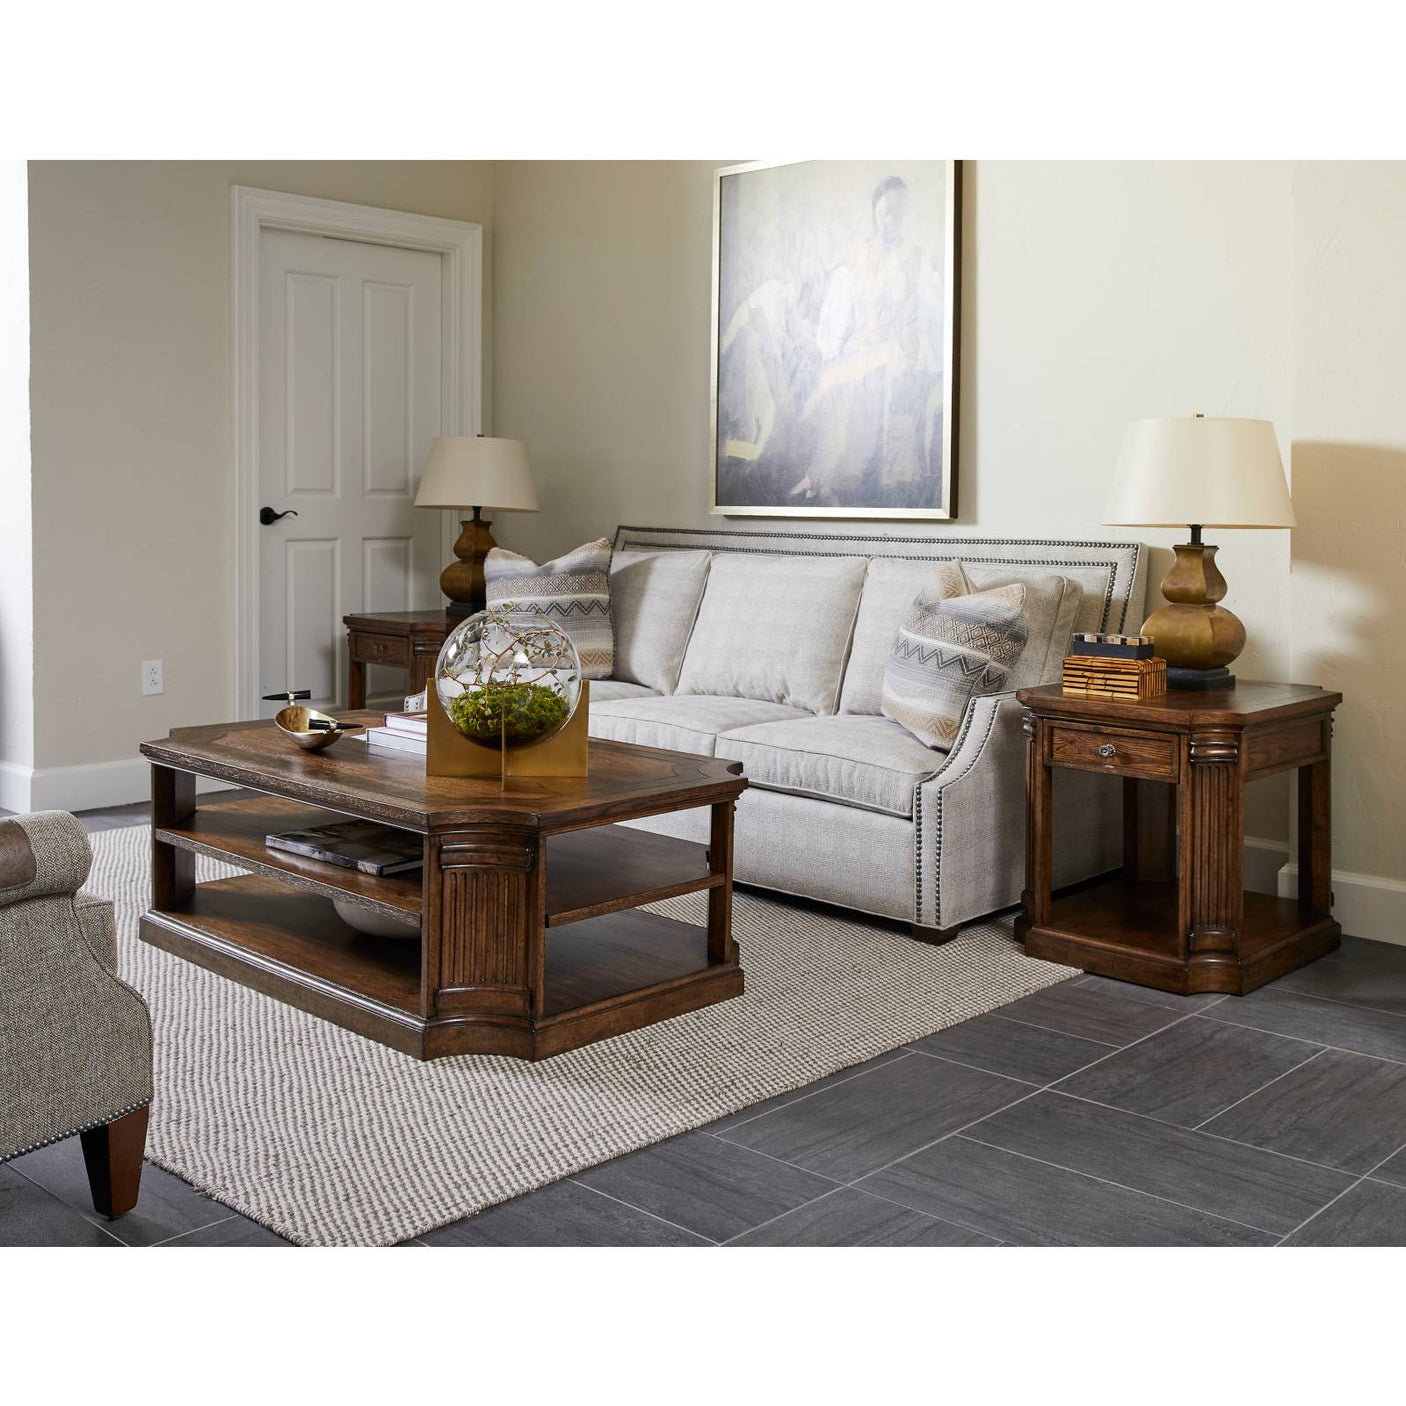 Thoroughbred Grand Cocktail Table Rectangular Stanley Furniture